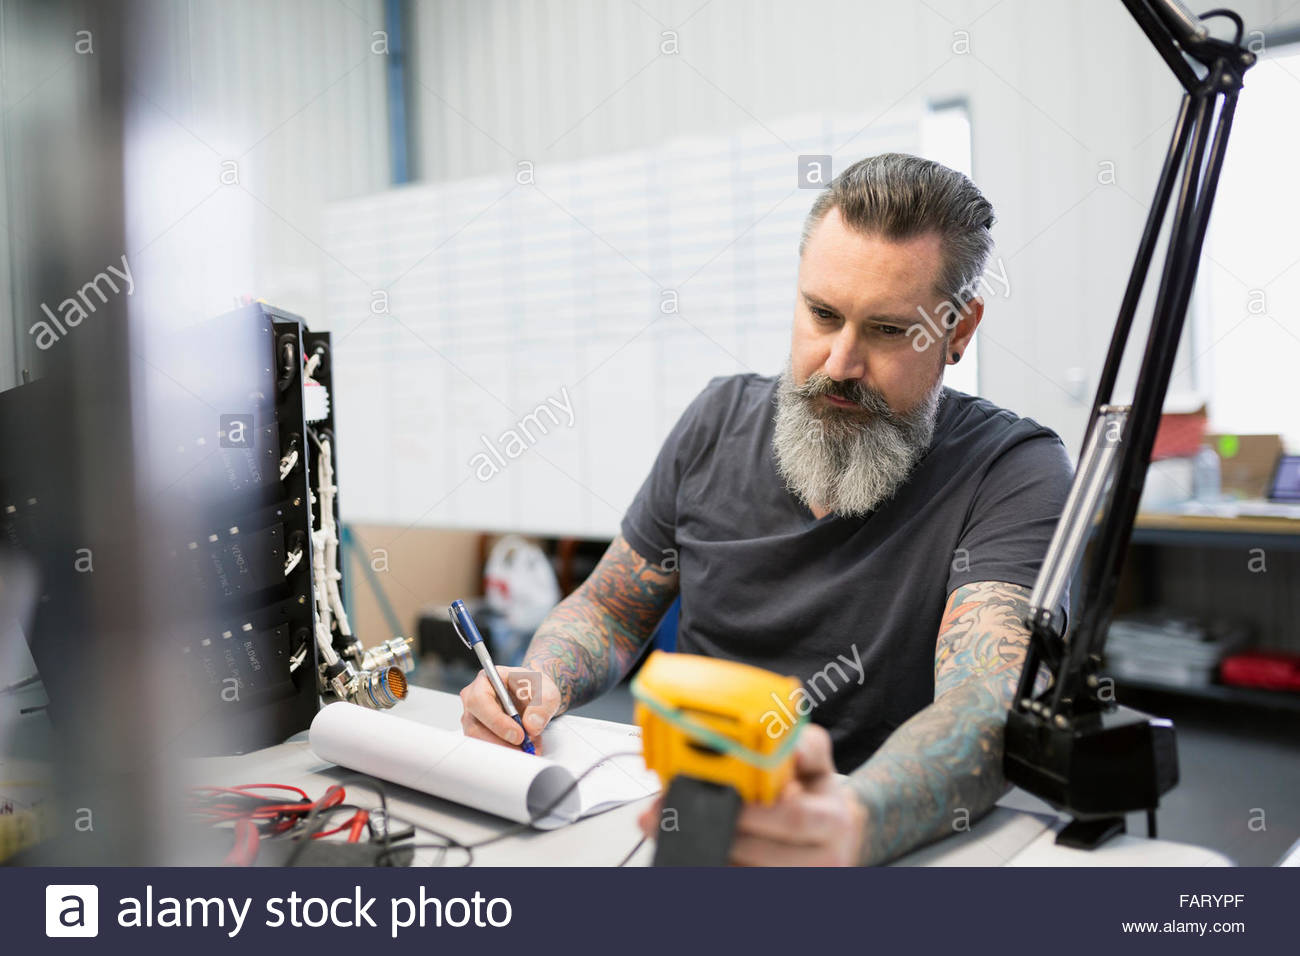 Helicopter technician performing diagnostics on module - Stock Image